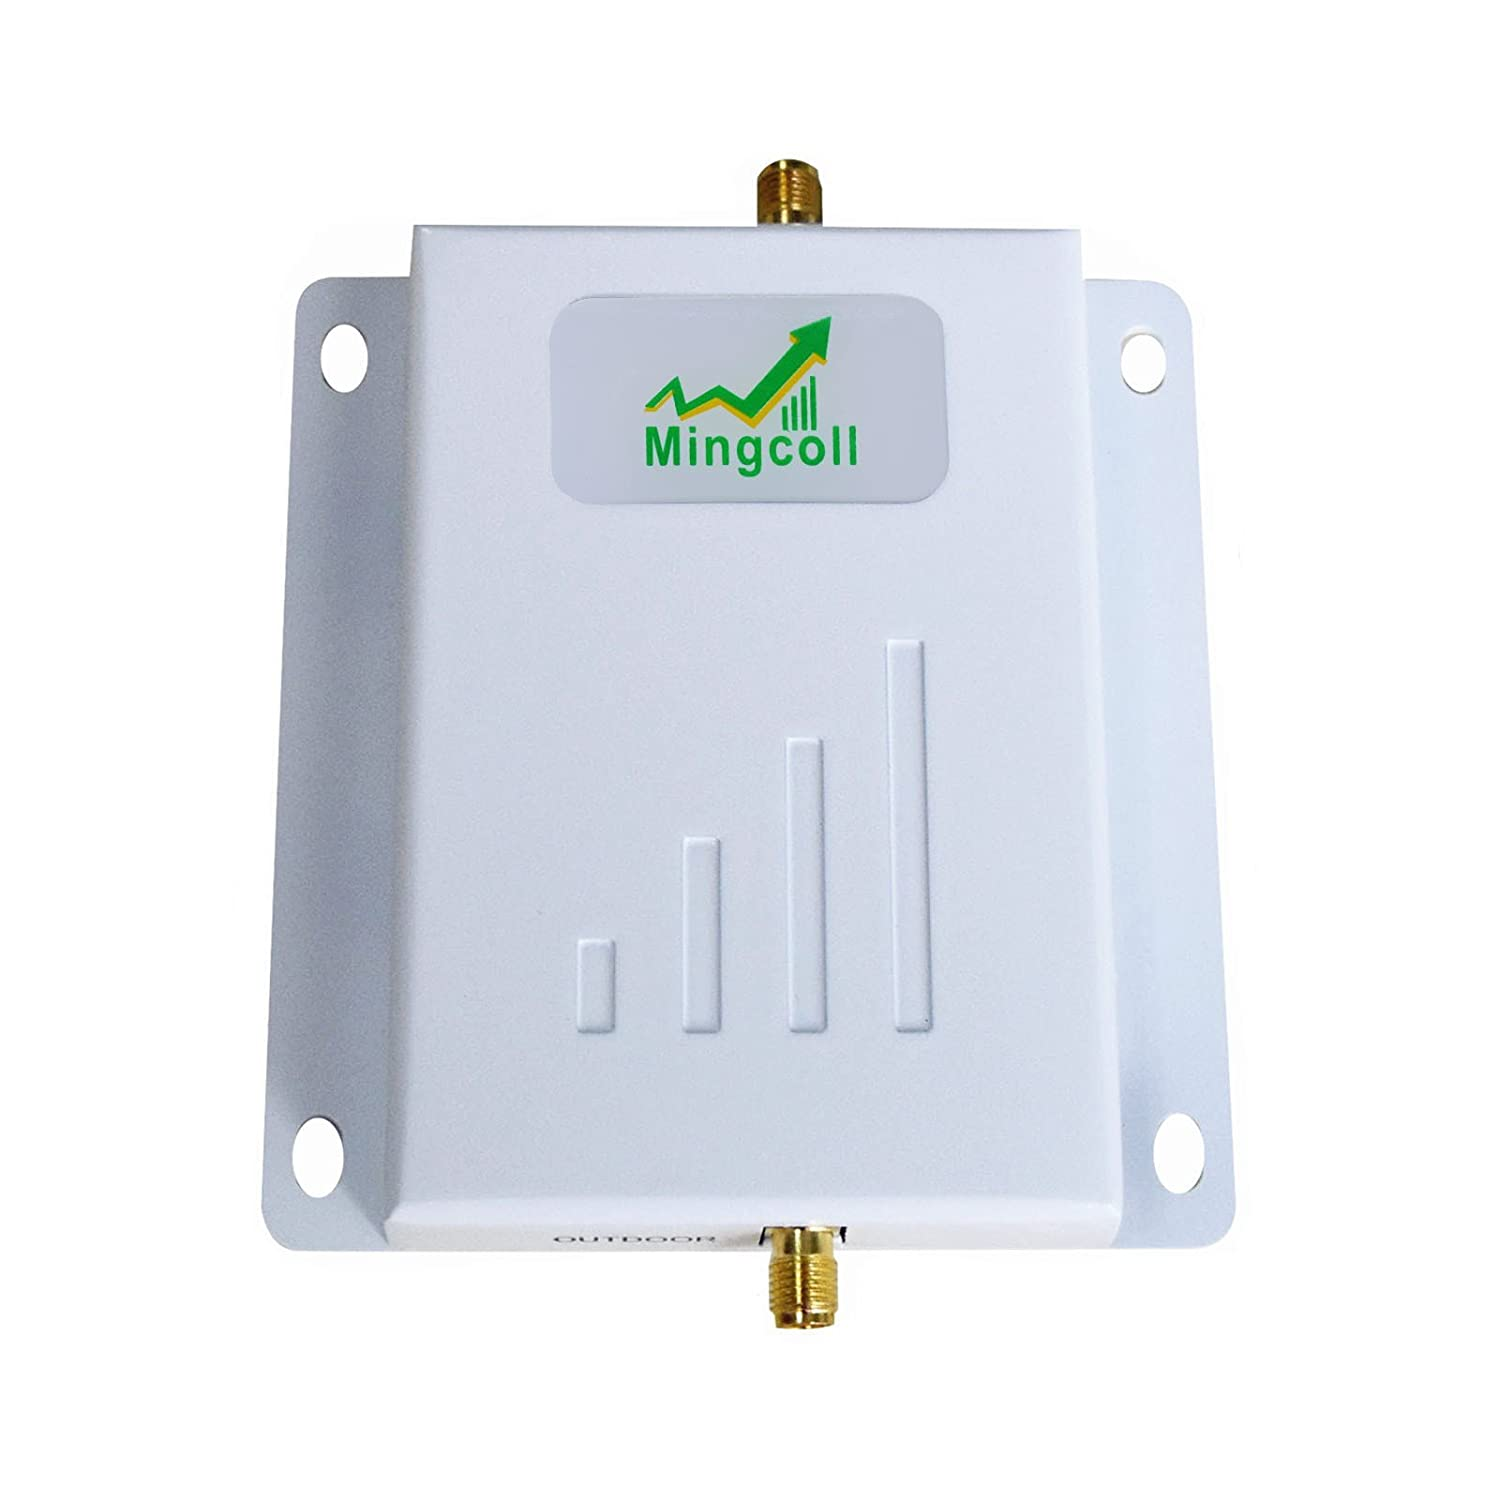 Amazon.com: Mingcoll 700MHz Indoor Whip Antenna N-Type Connector for Cell Signal Booster (WH02-5QC): Cell Phones & Accessories